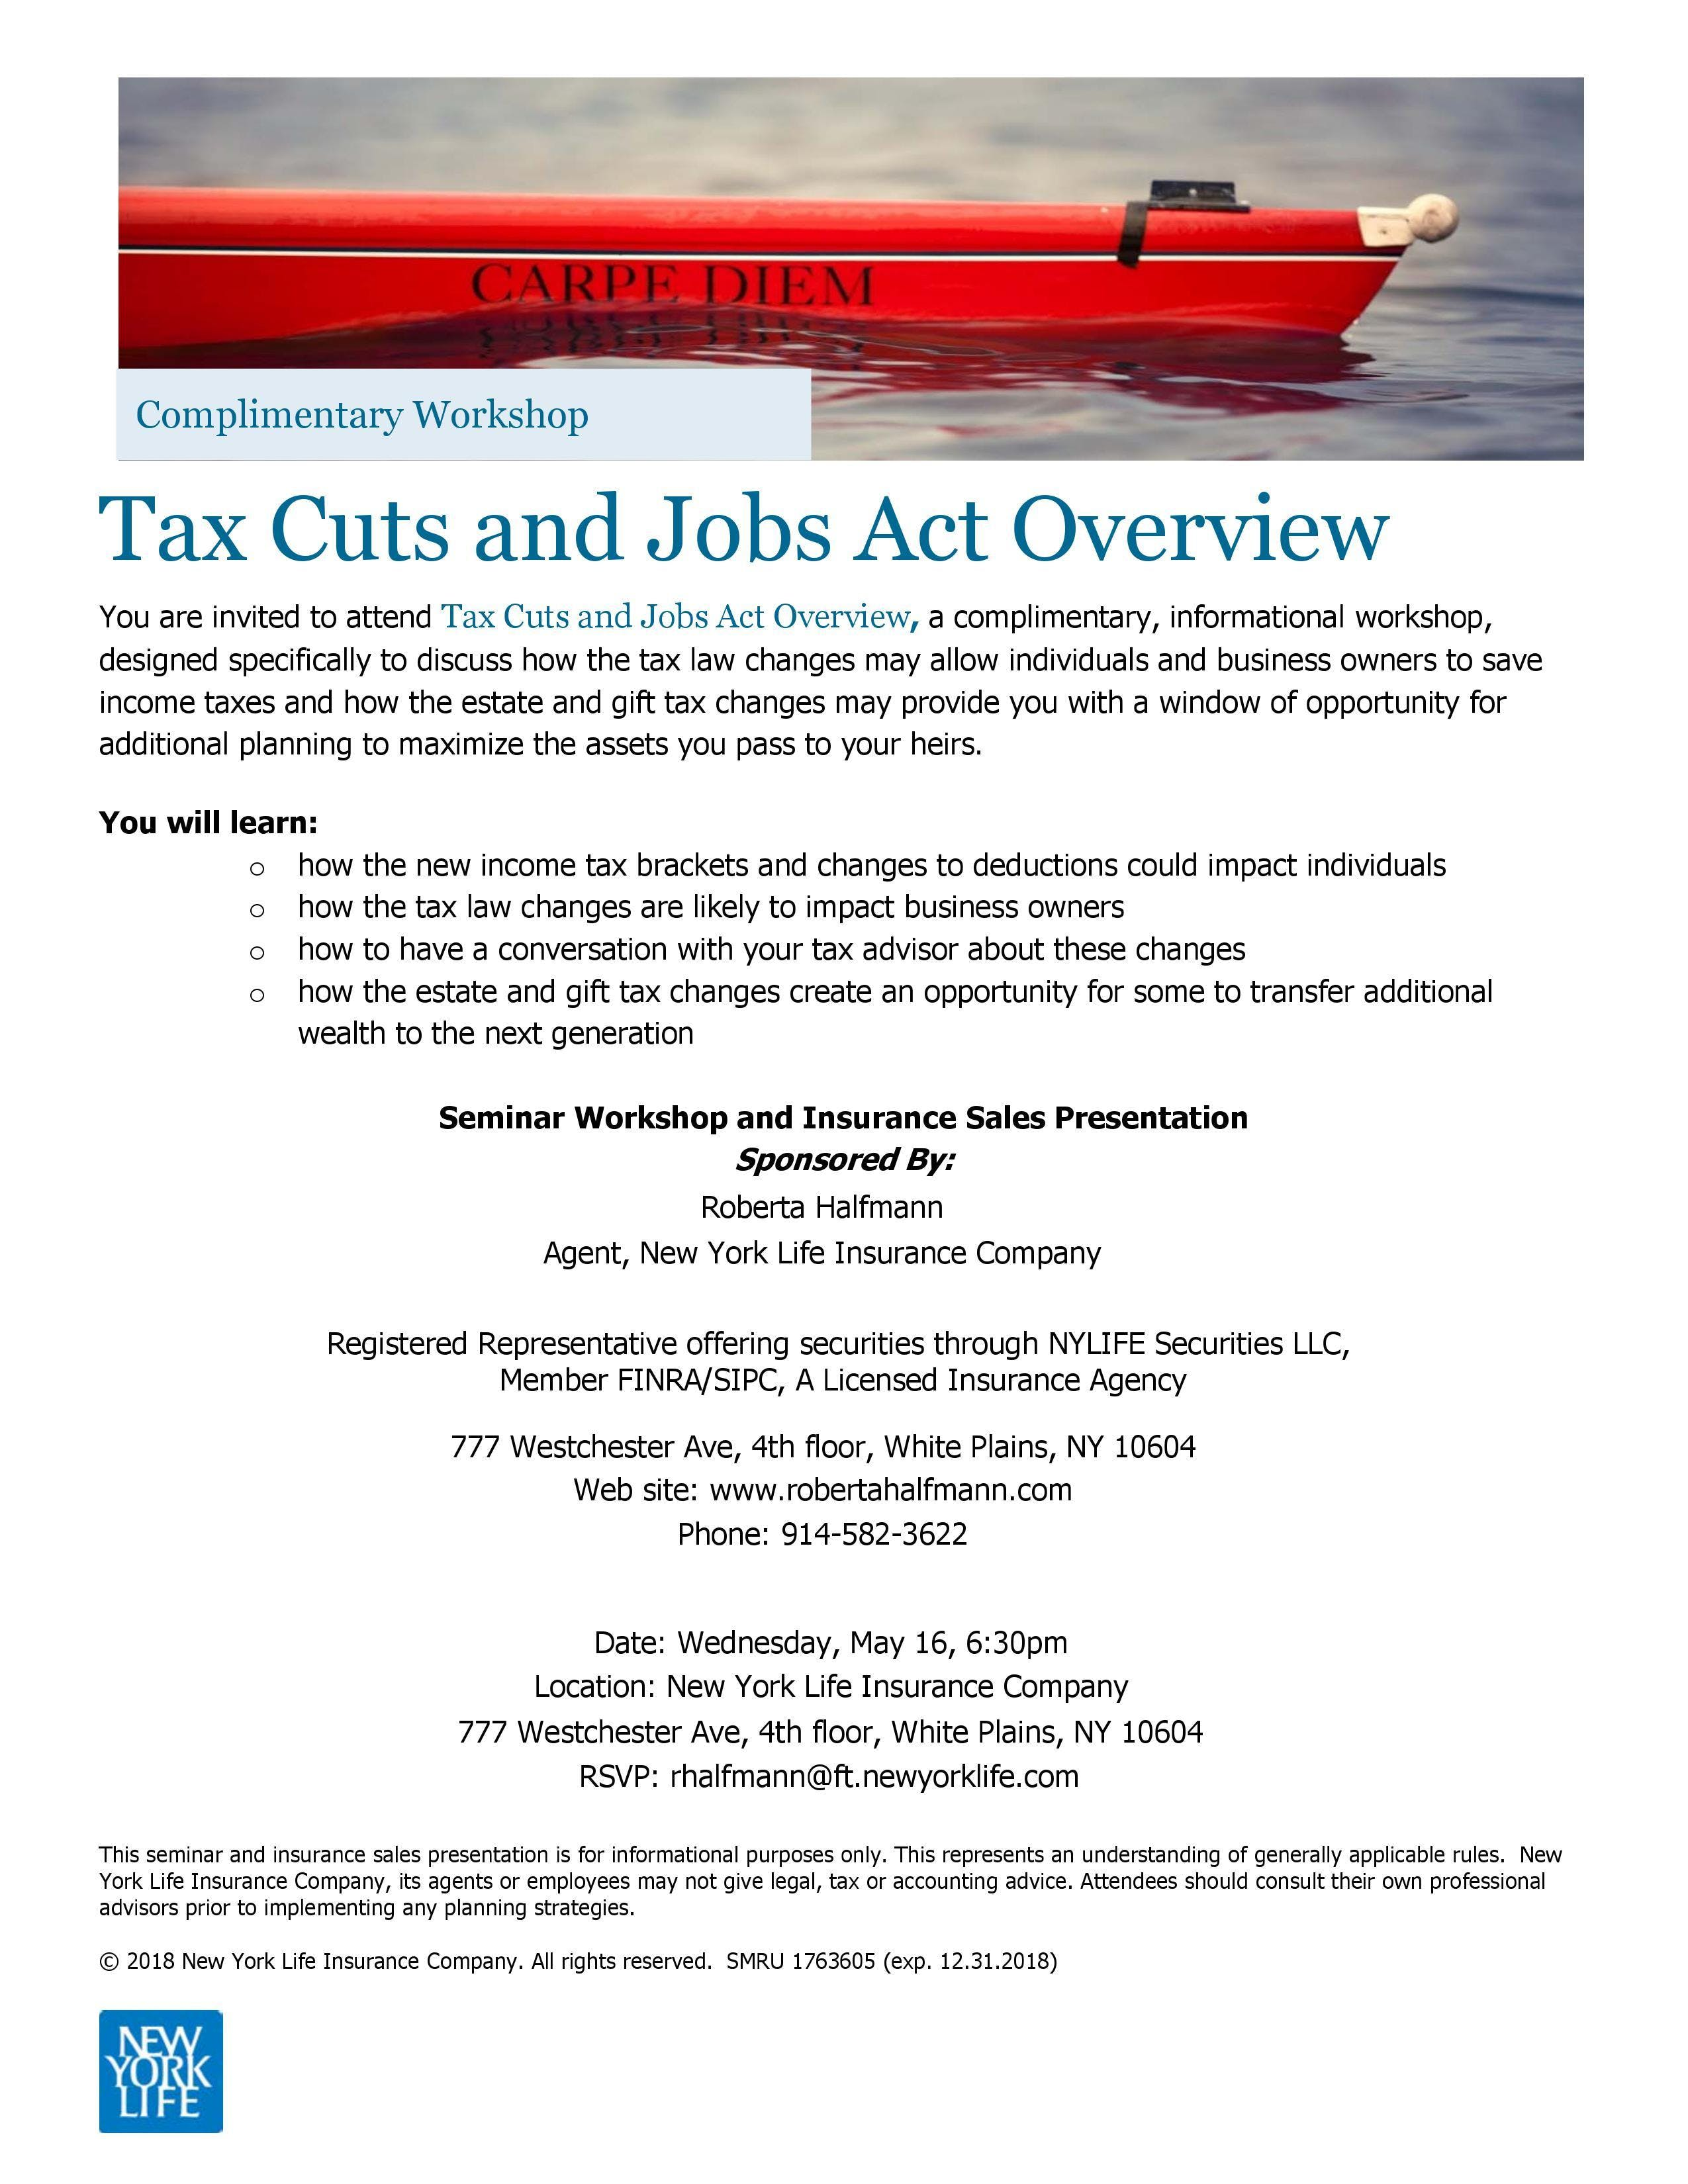 Tax Cuts and Jobs Act Overview